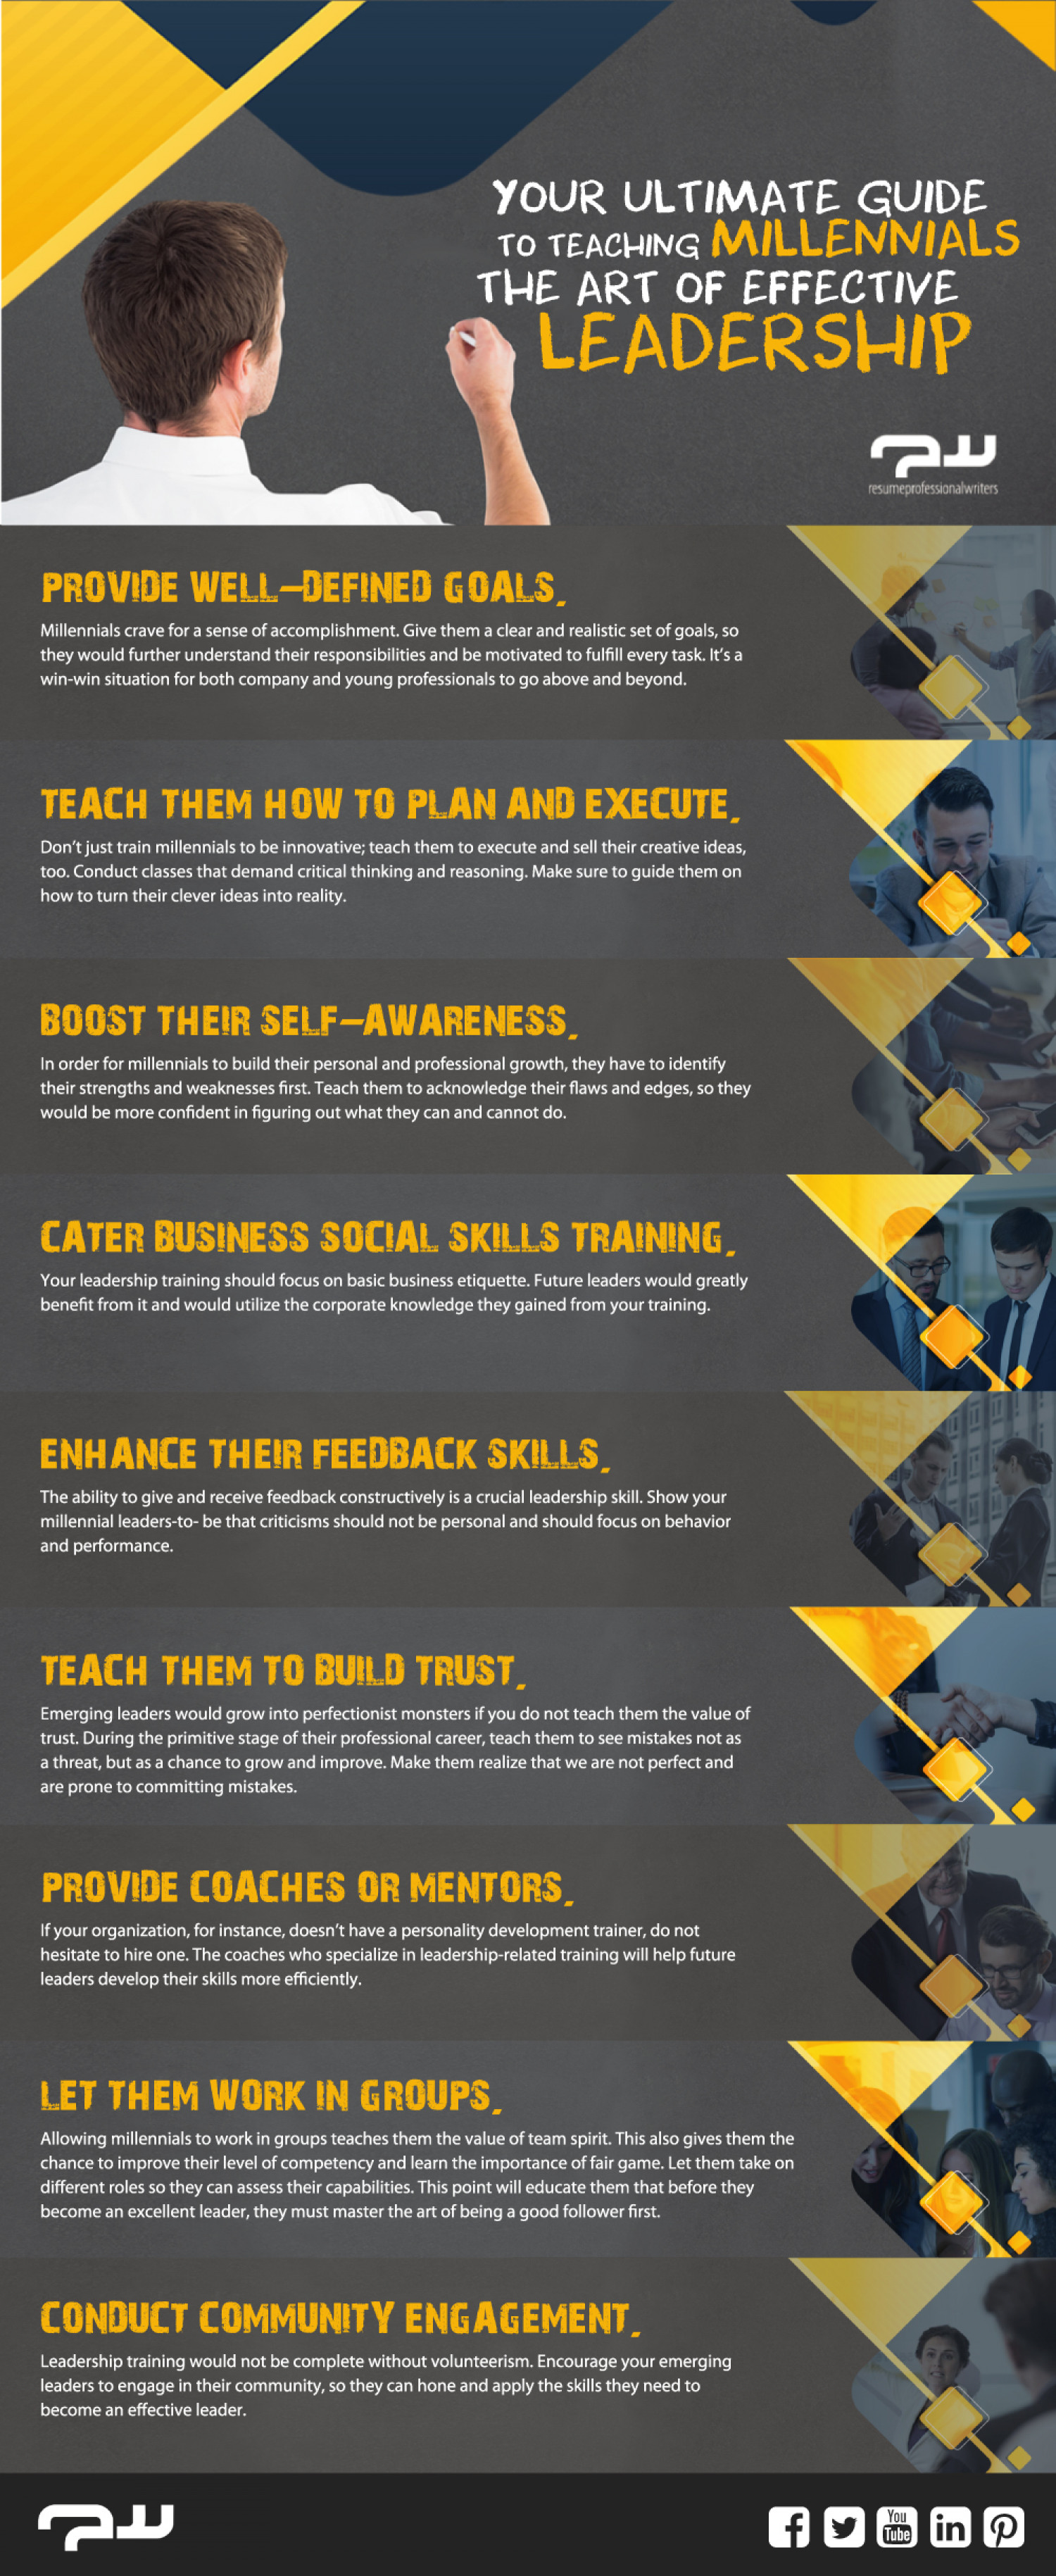 Your Ultimate Guide to Teaching Millennials the Art of Effective Leadership Infographic